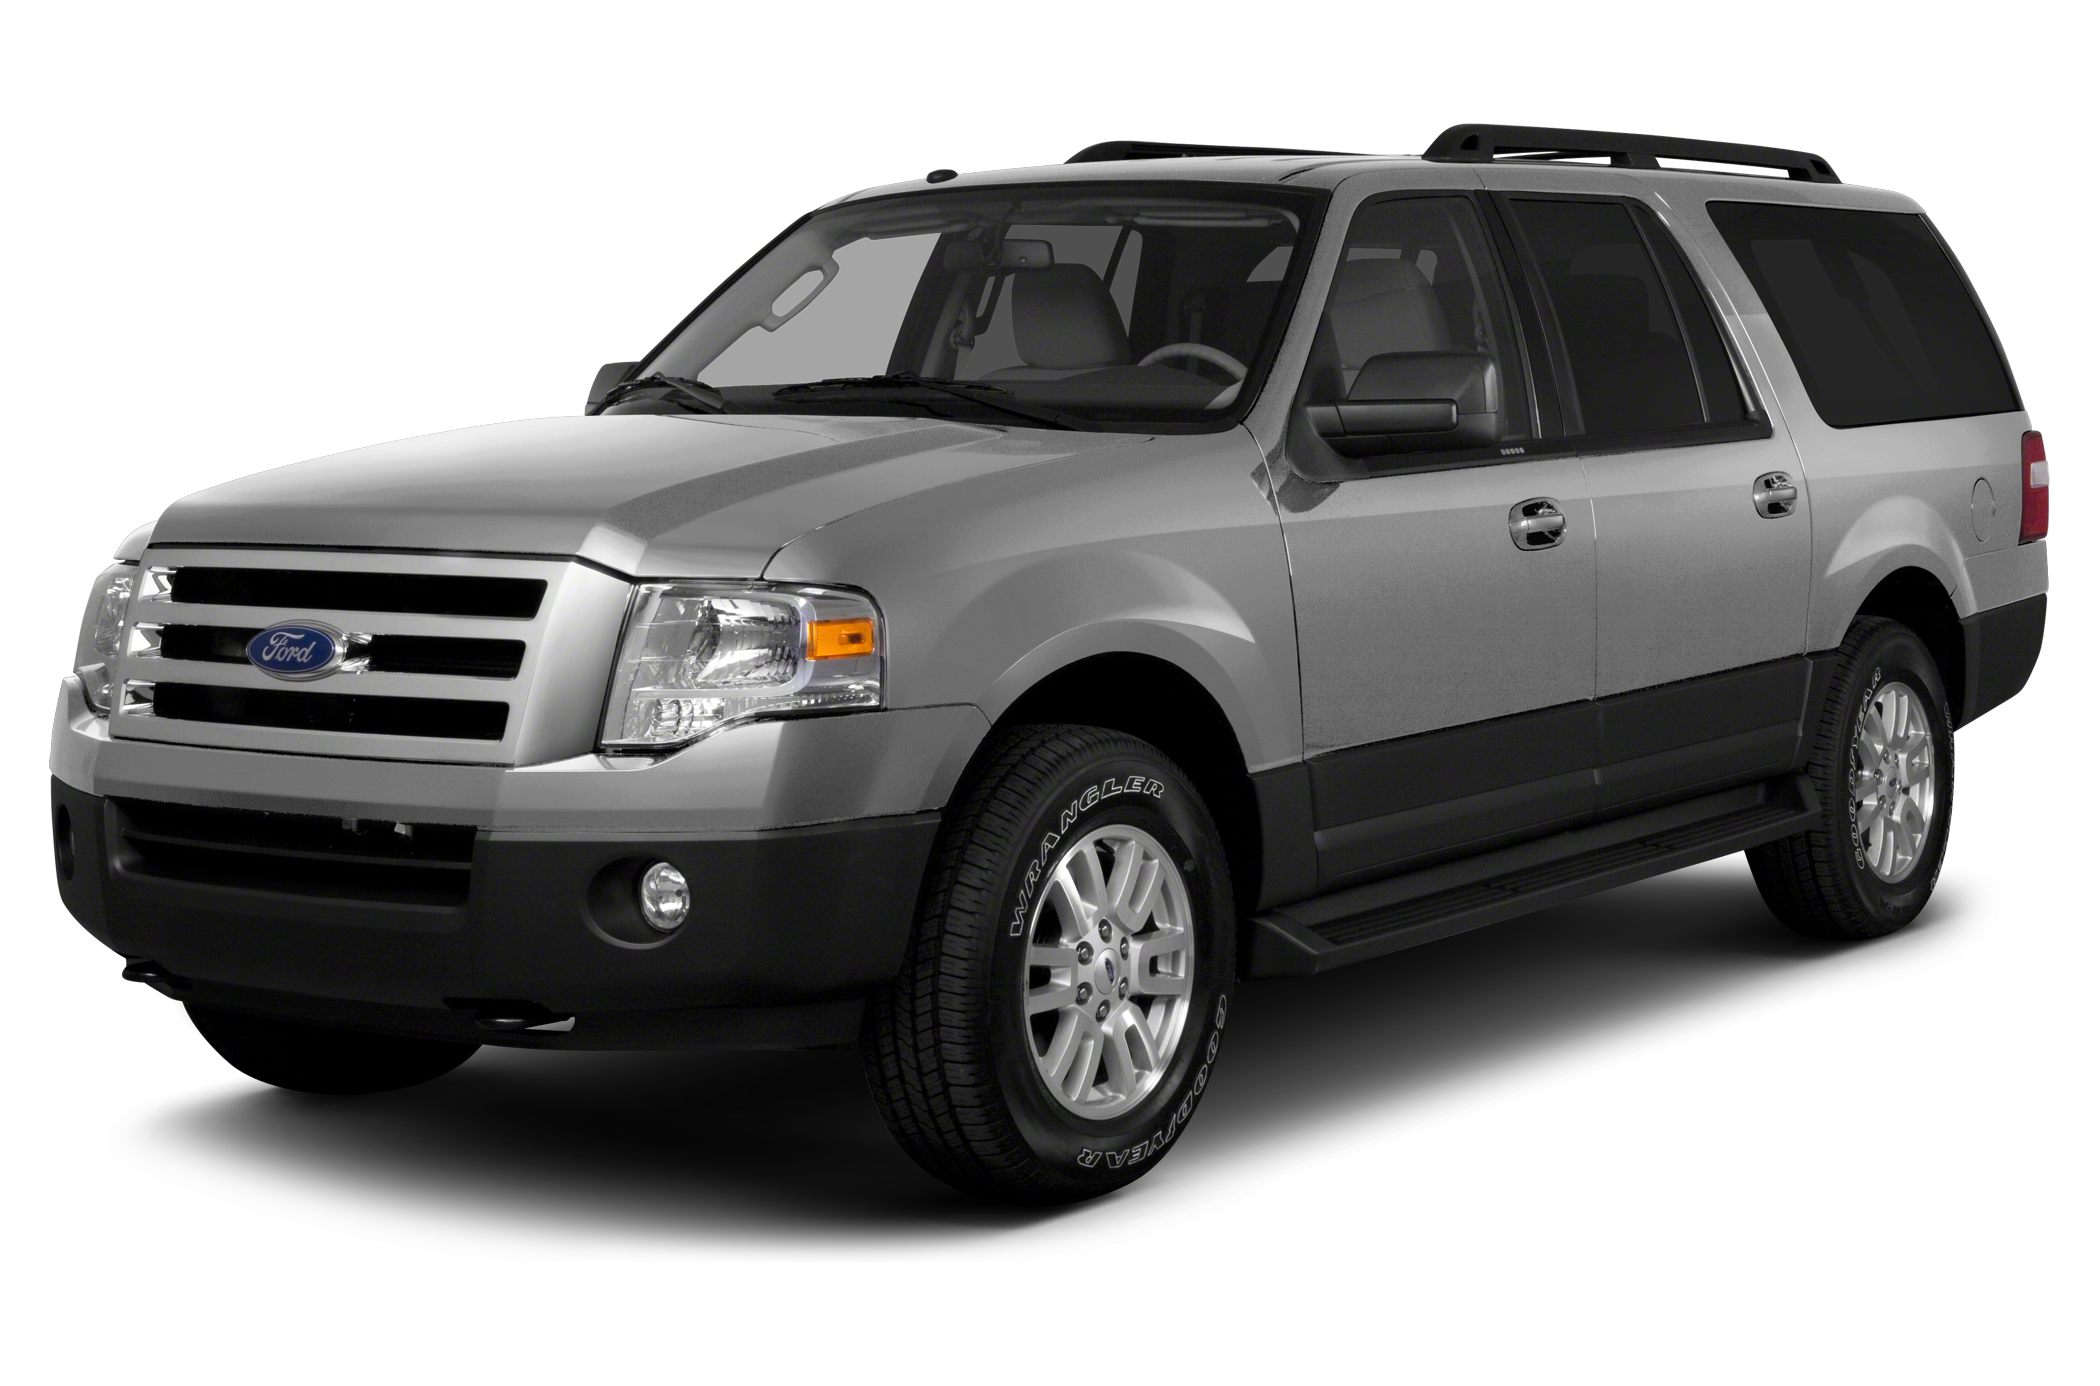 2014 Ford Expedition EL Limited LOW MILES This 2014 Ford Expedition EL Limited will sell fast -4X